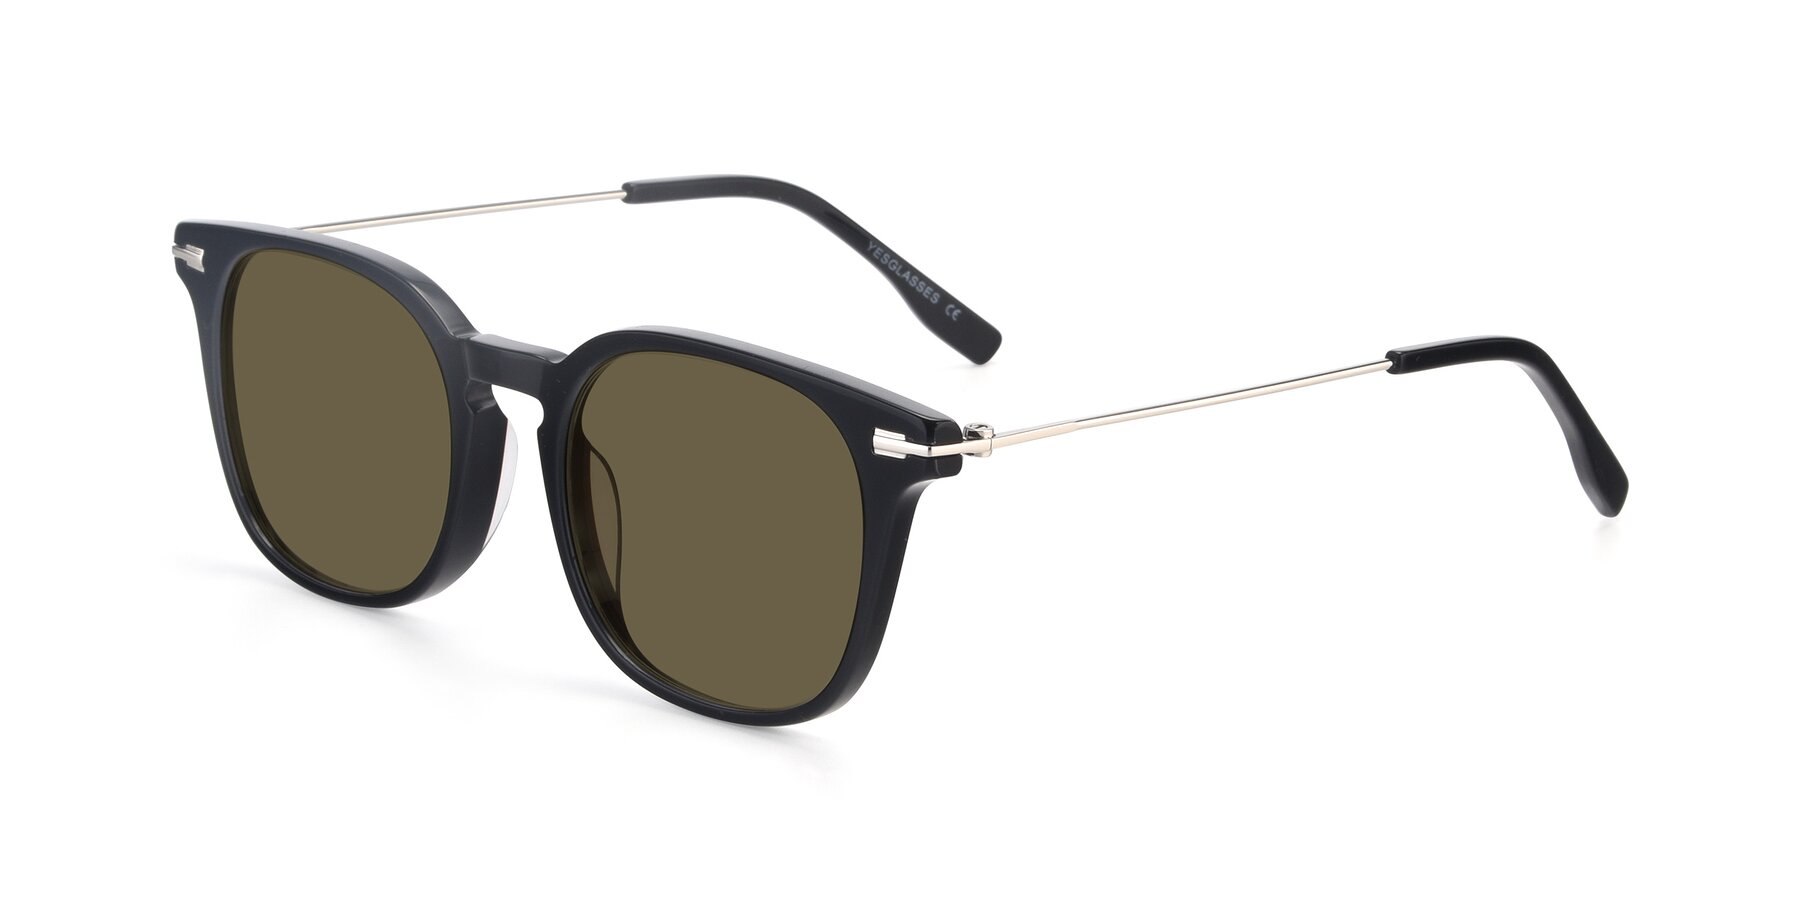 Angle of 17711 in Black with Brown Polarized Lenses